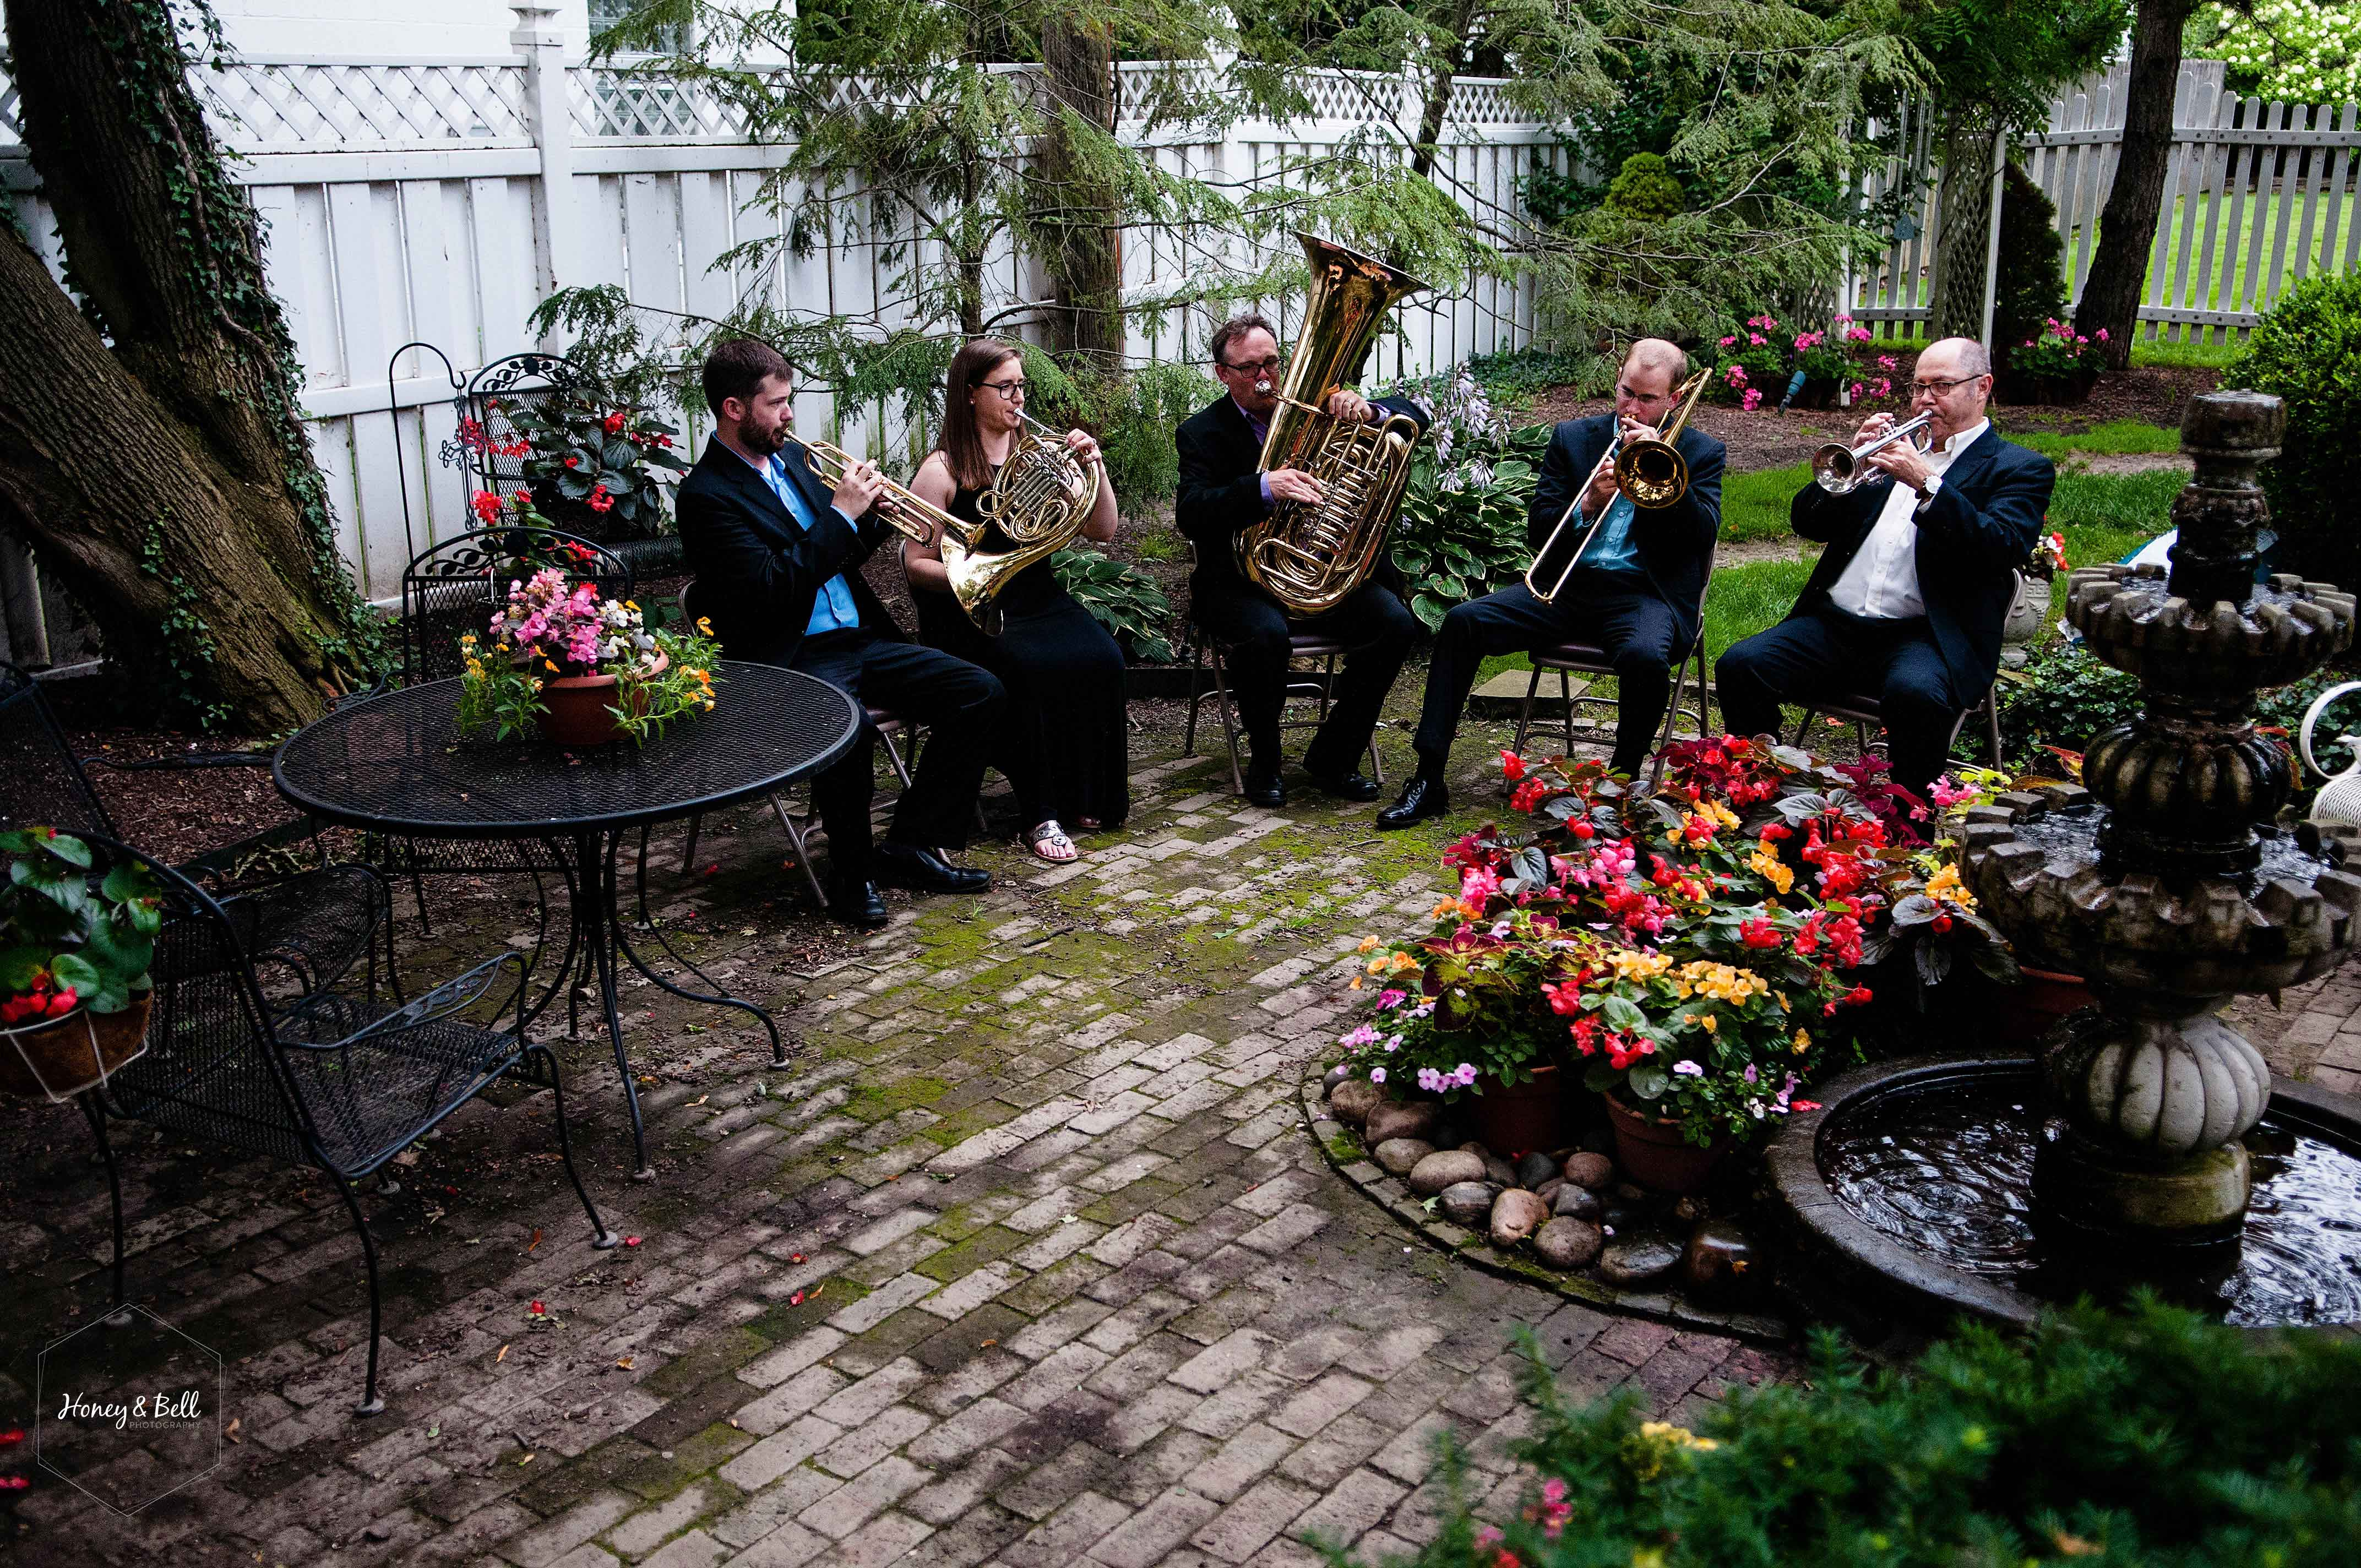 north-of-canada-brass-quintet-detroit-michigan-grosse-pointe-band-photographer-24